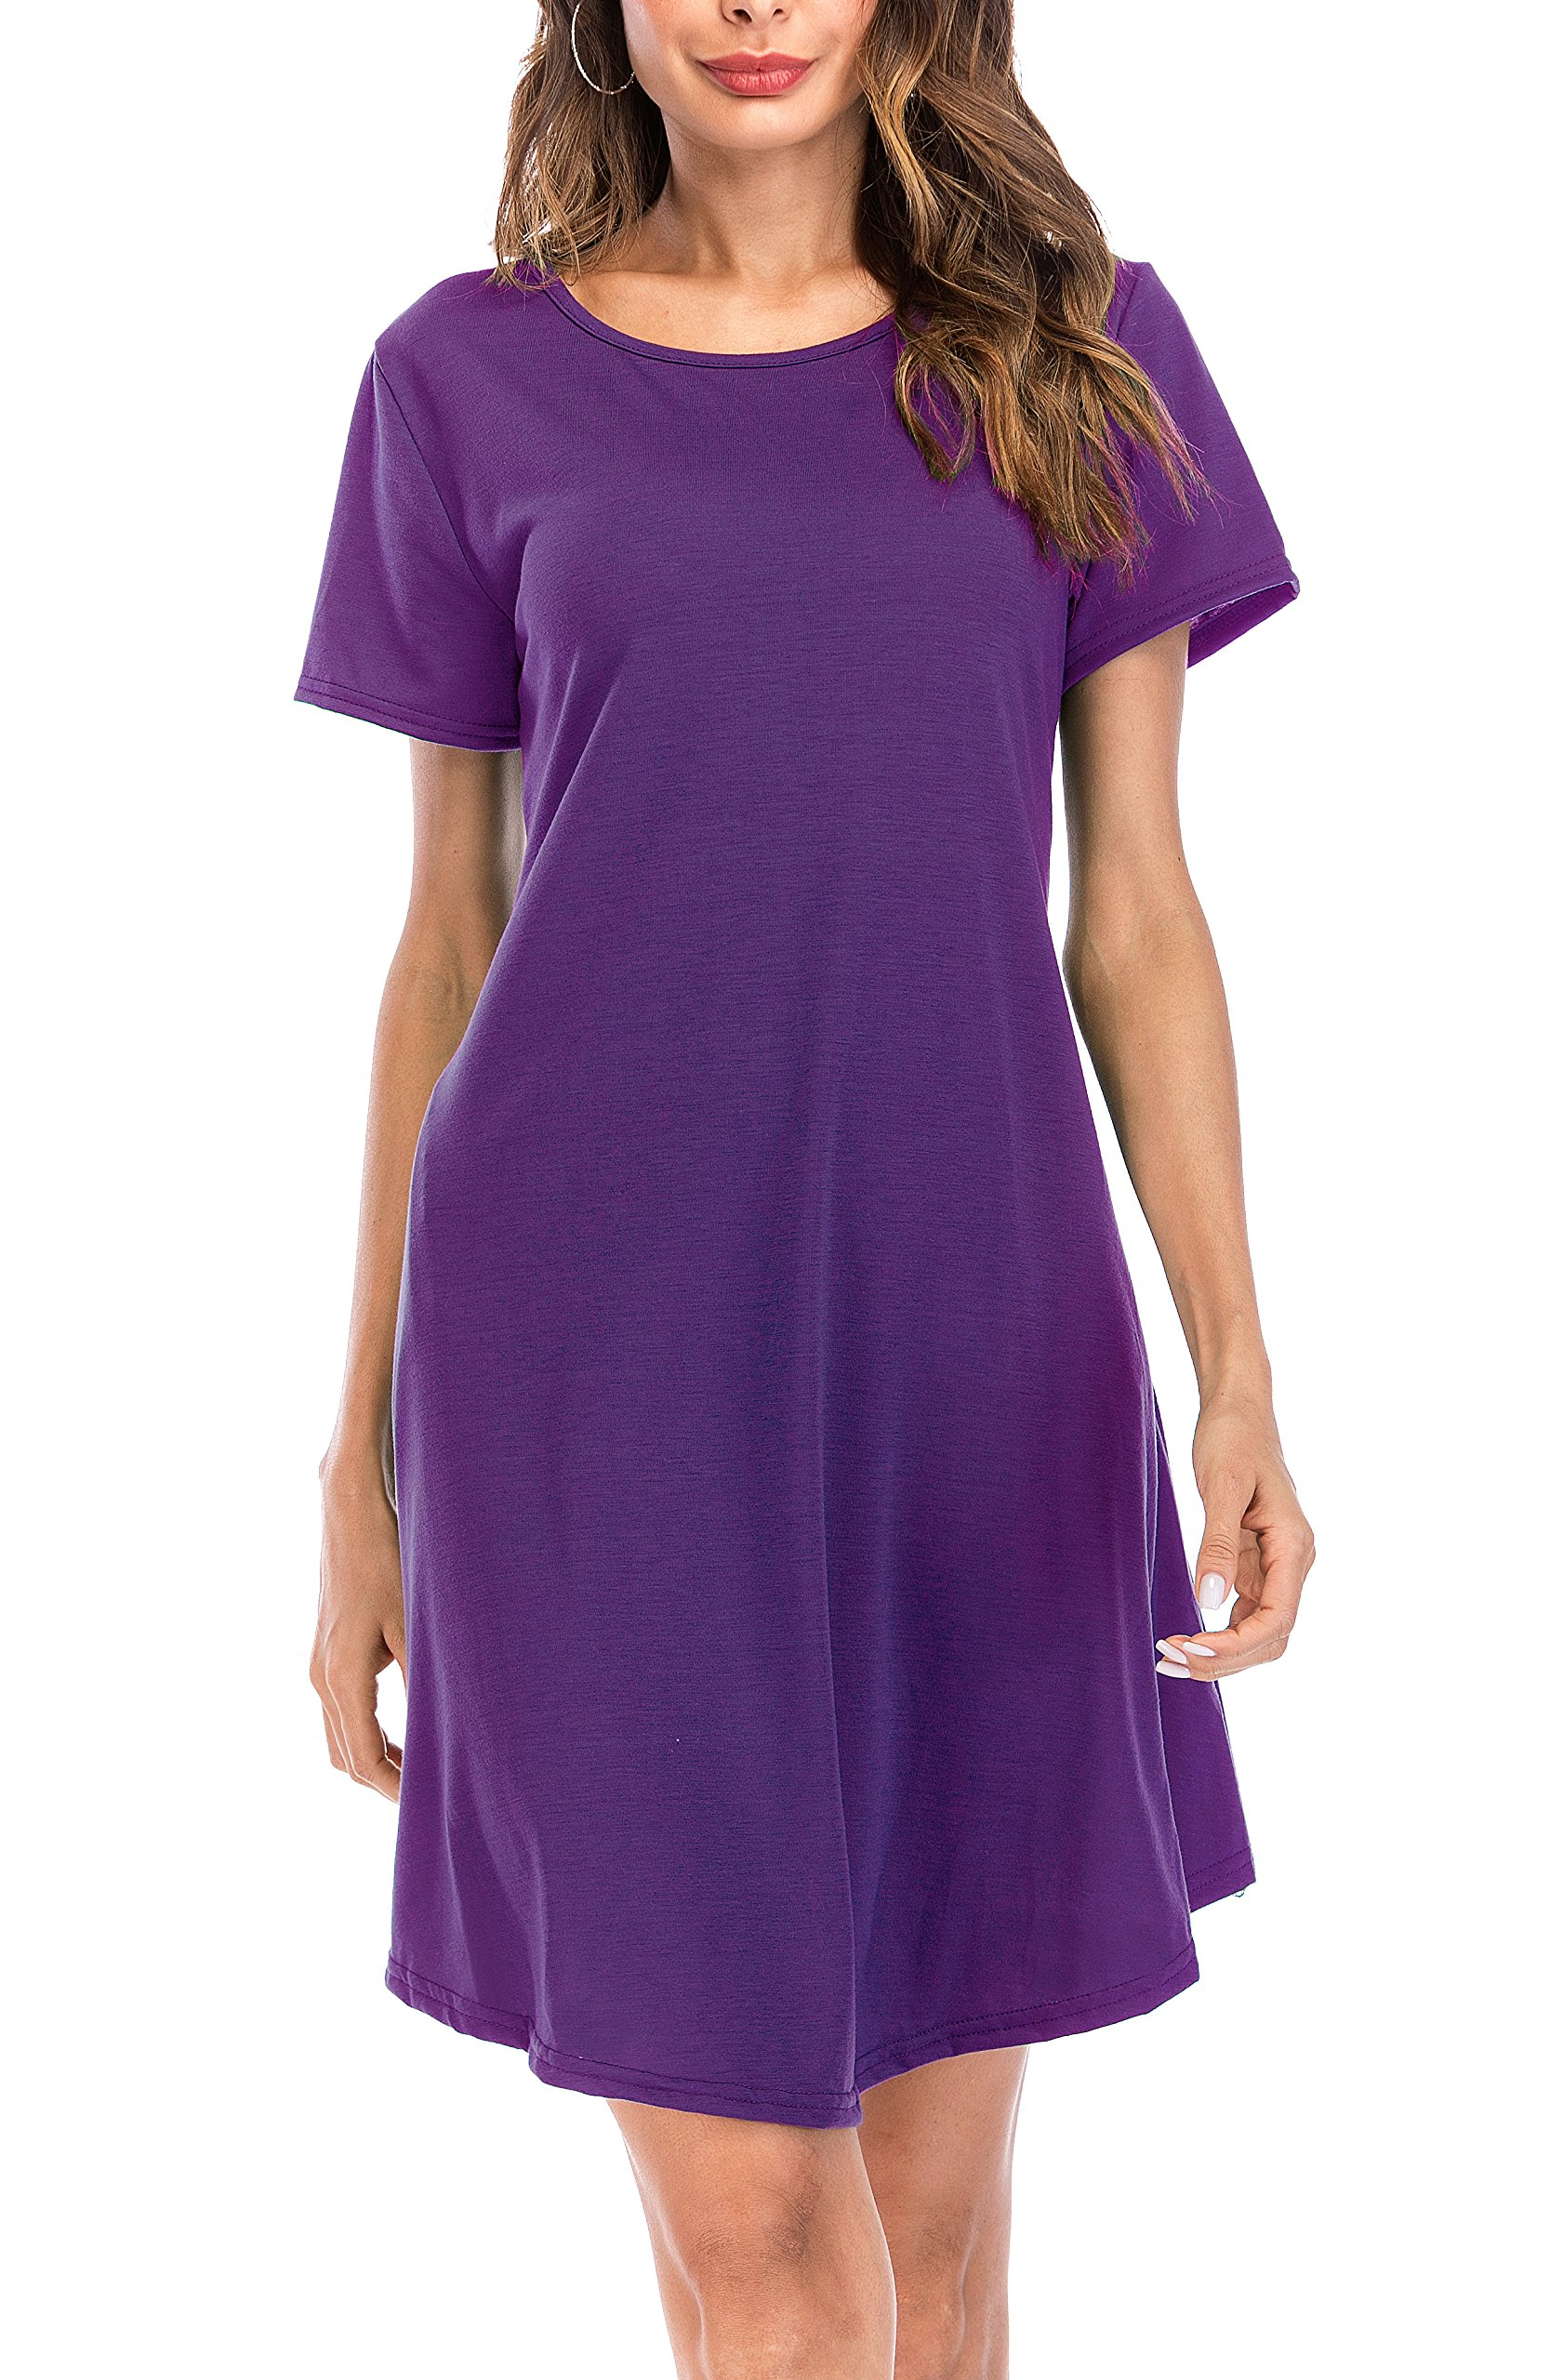 MIDOSOO Women Short Sleeve A-Line Fit & Flare Midi Long Dress with Pockets Purple 2XL